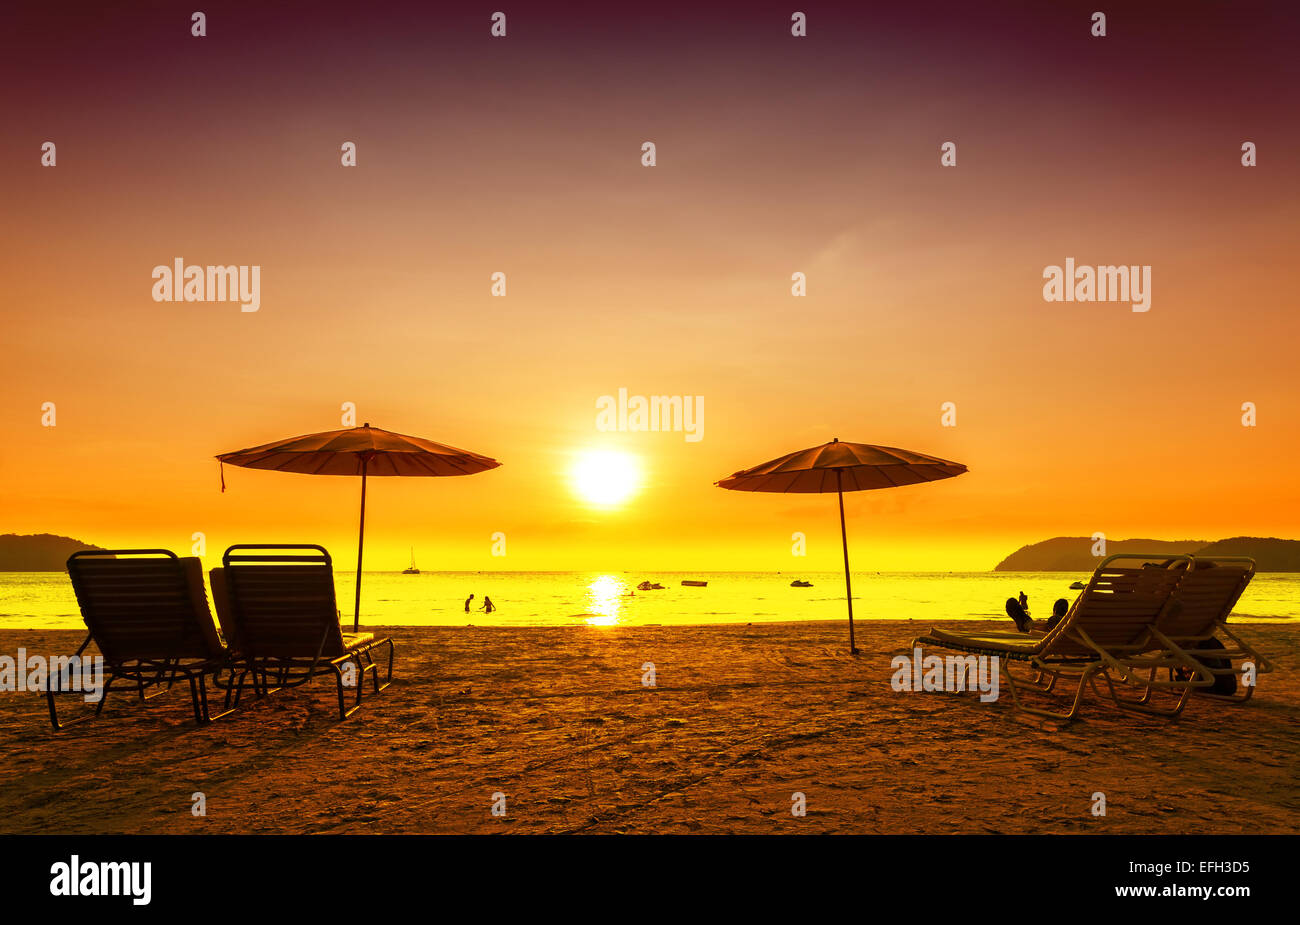 Retro filtered picture of beach chairs and umbrellas on sand at sunset. Concept for rest, relaxation, holidays. - Stock Image